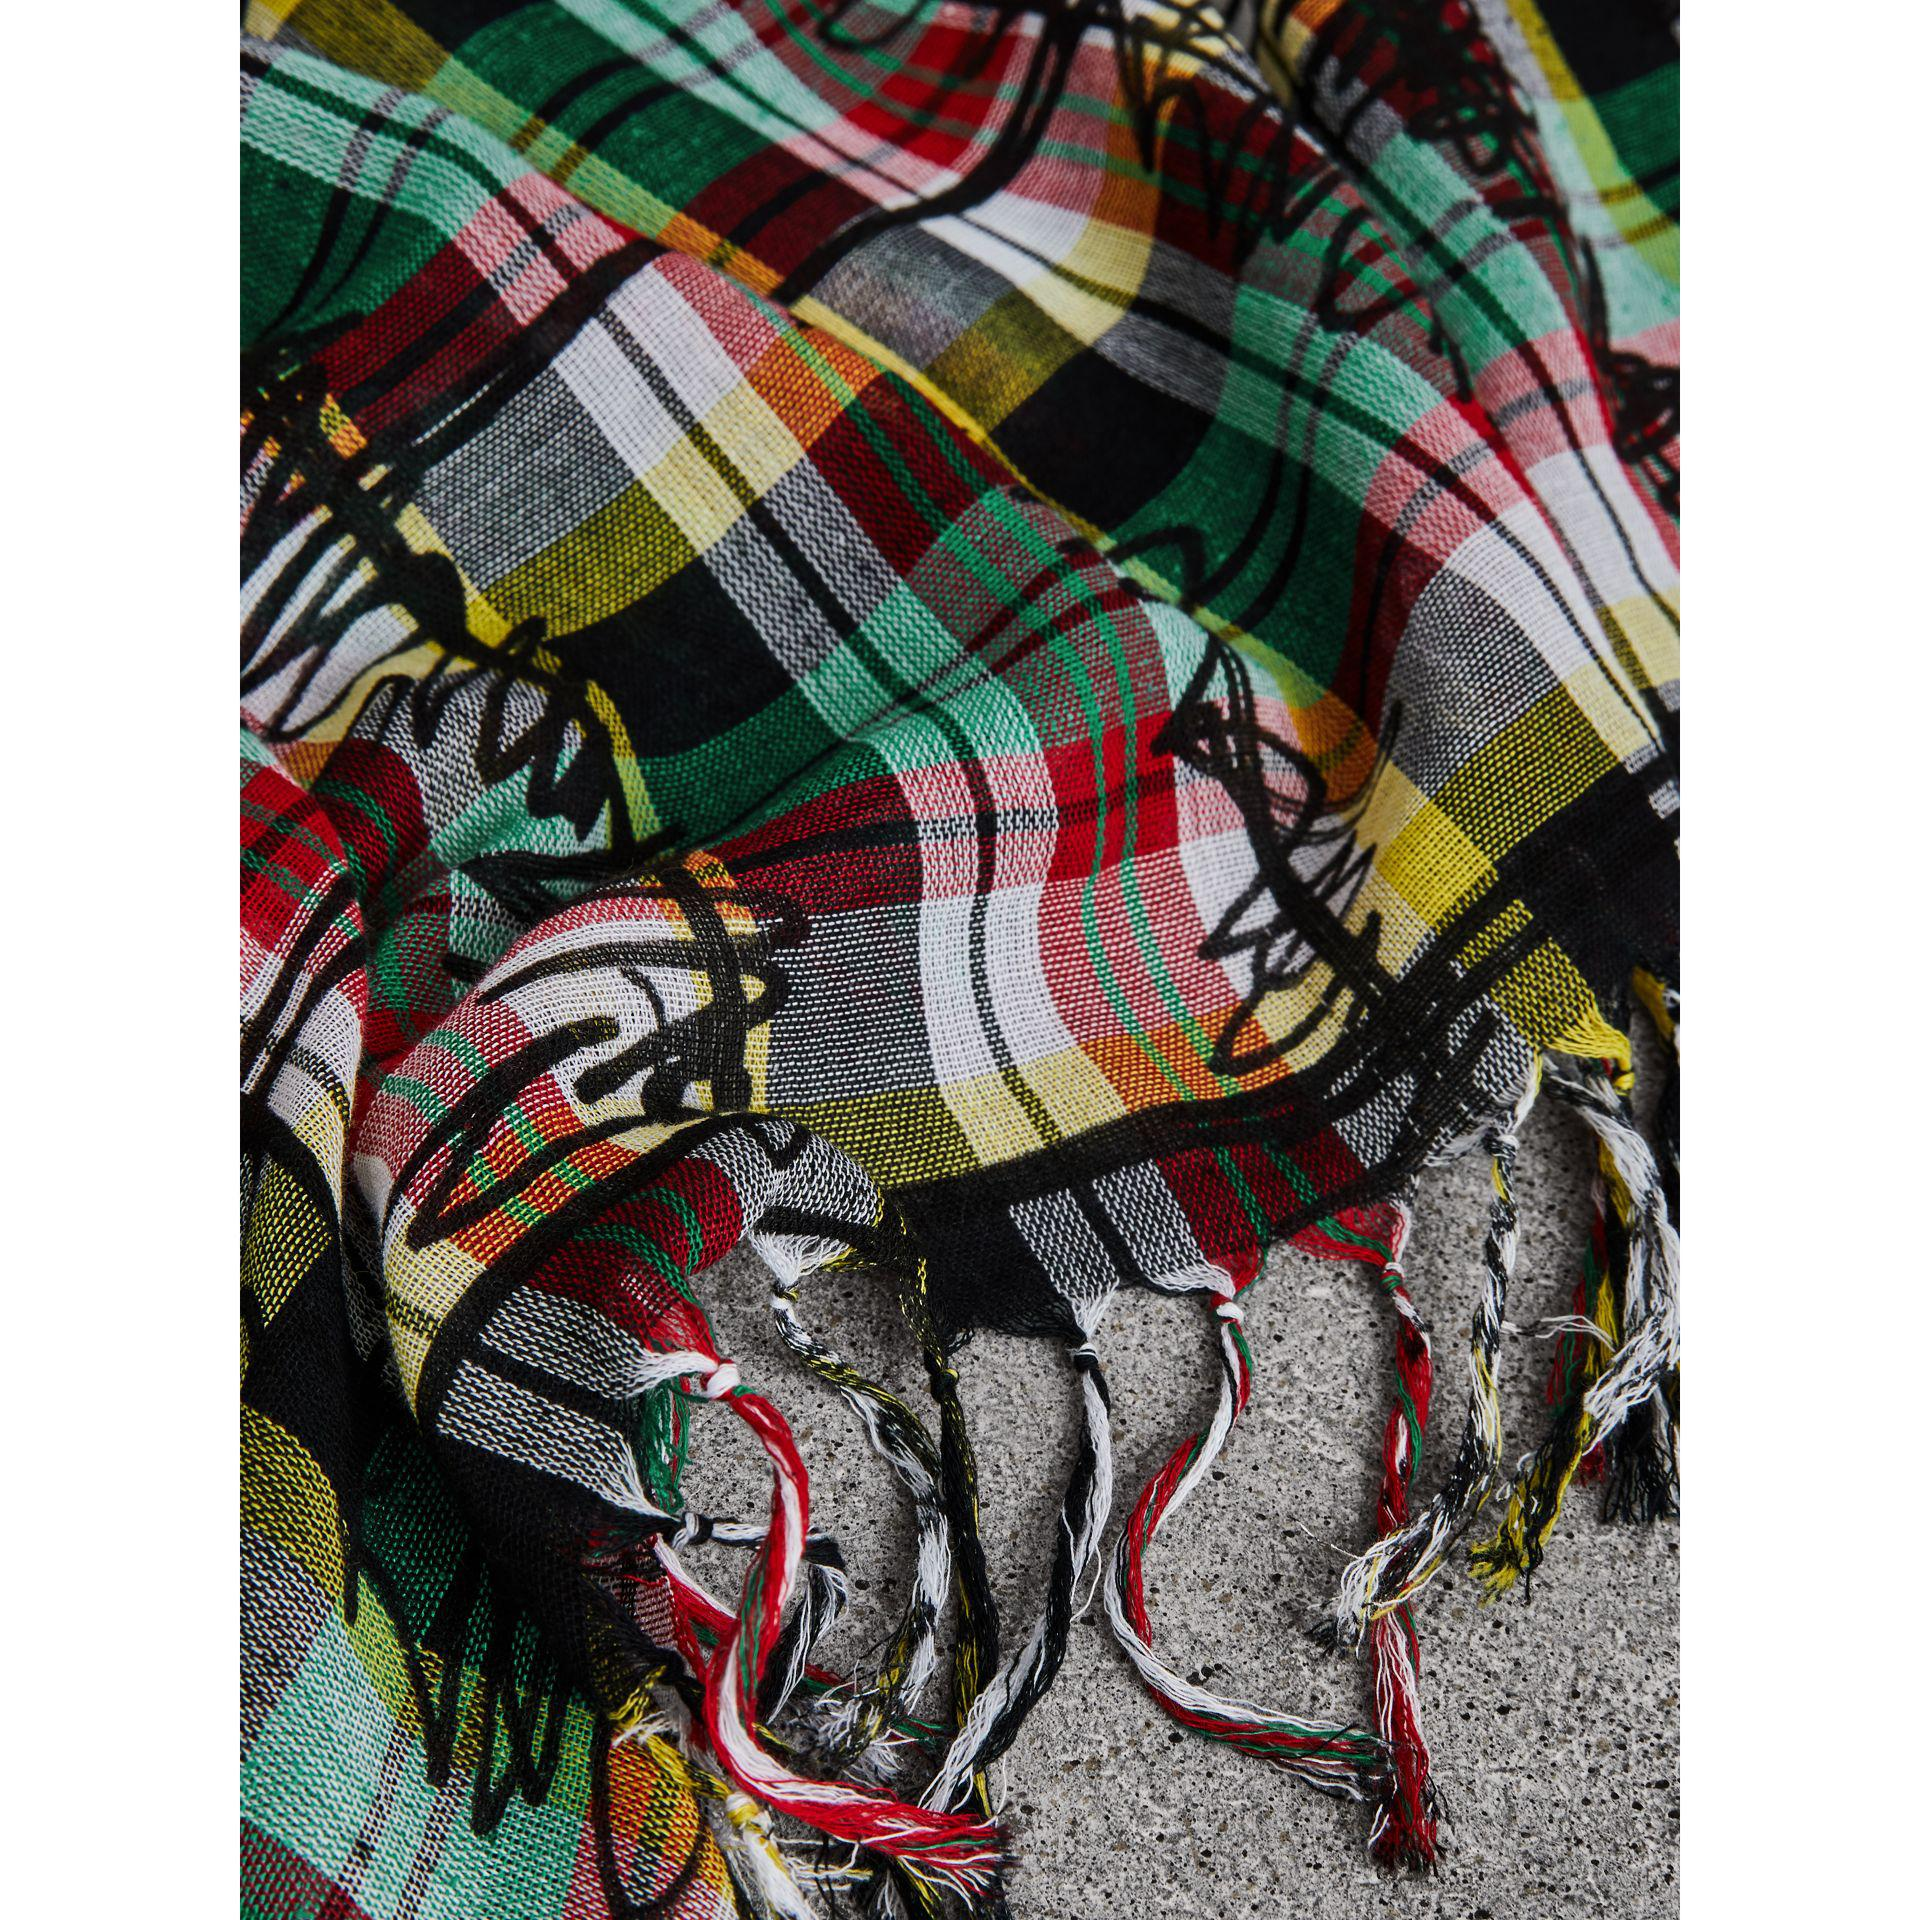 The Burberry Bandana in Scribble Check Cotton Silk - Green Burberry F4OJfUODpg